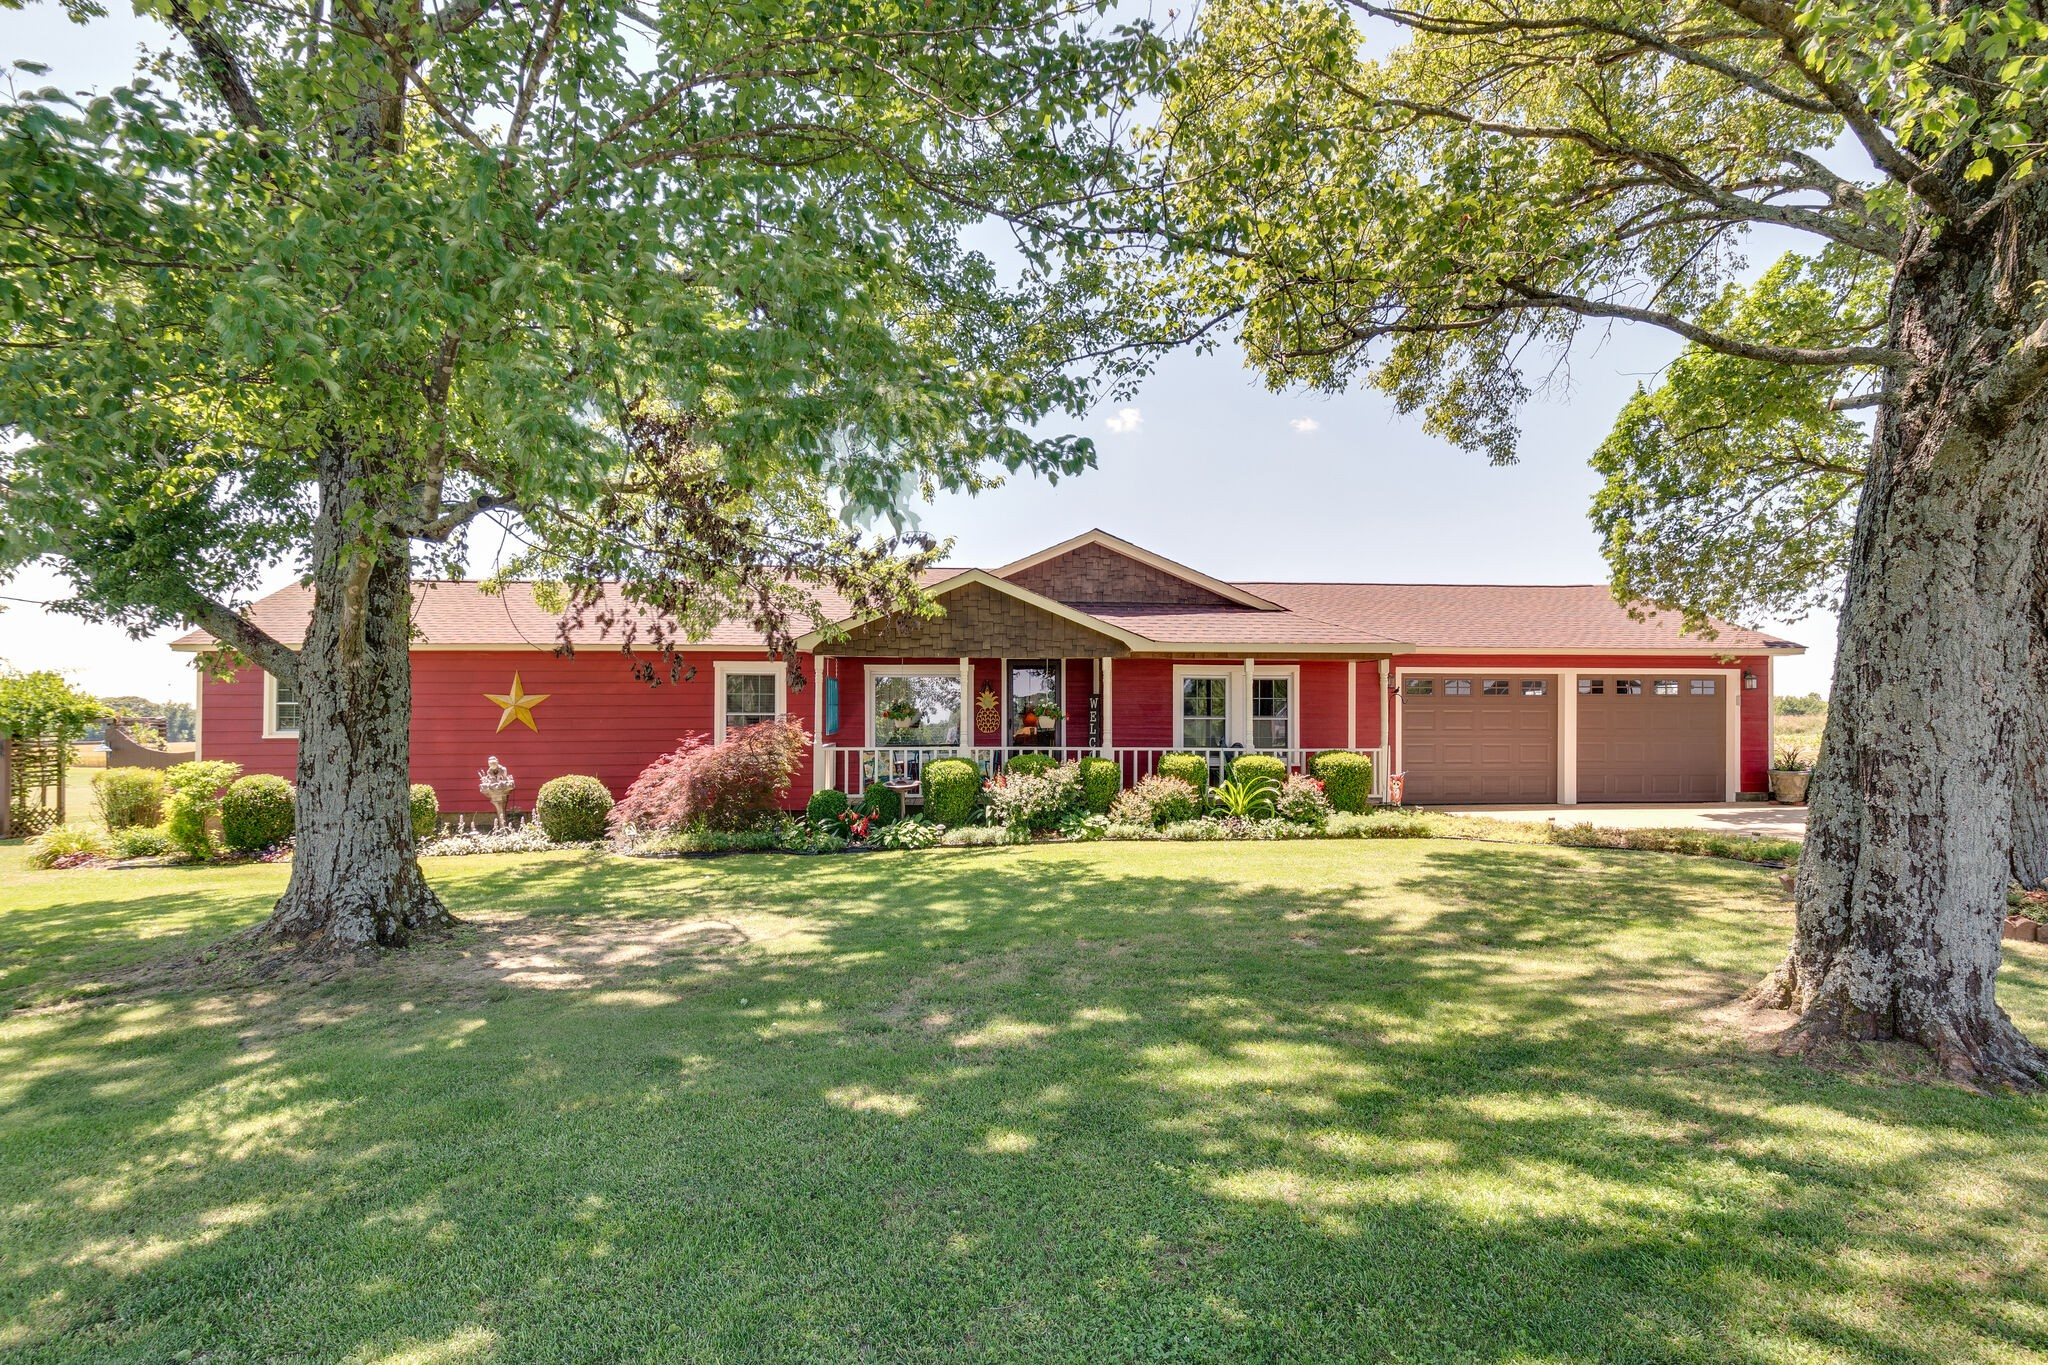 479 Rabbit Trail Rd Property Photo - Leoma, TN real estate listing